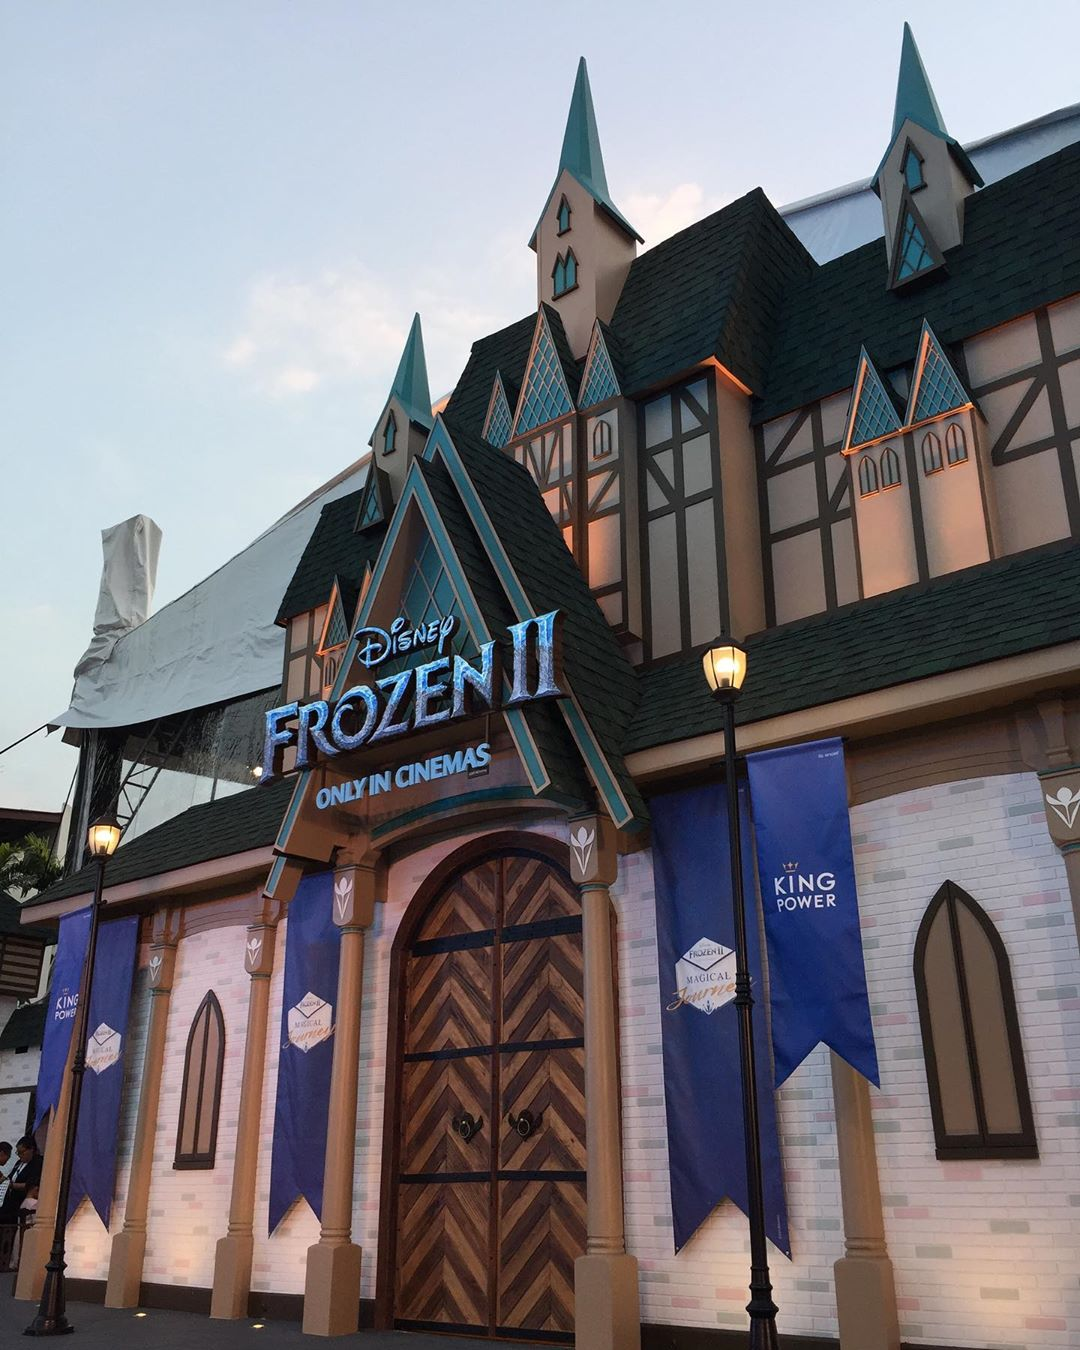 Bangkok Has A Free Frozen 2 Theme Park With Enchanted Photo Zones And Exclusive Disney Collectibles